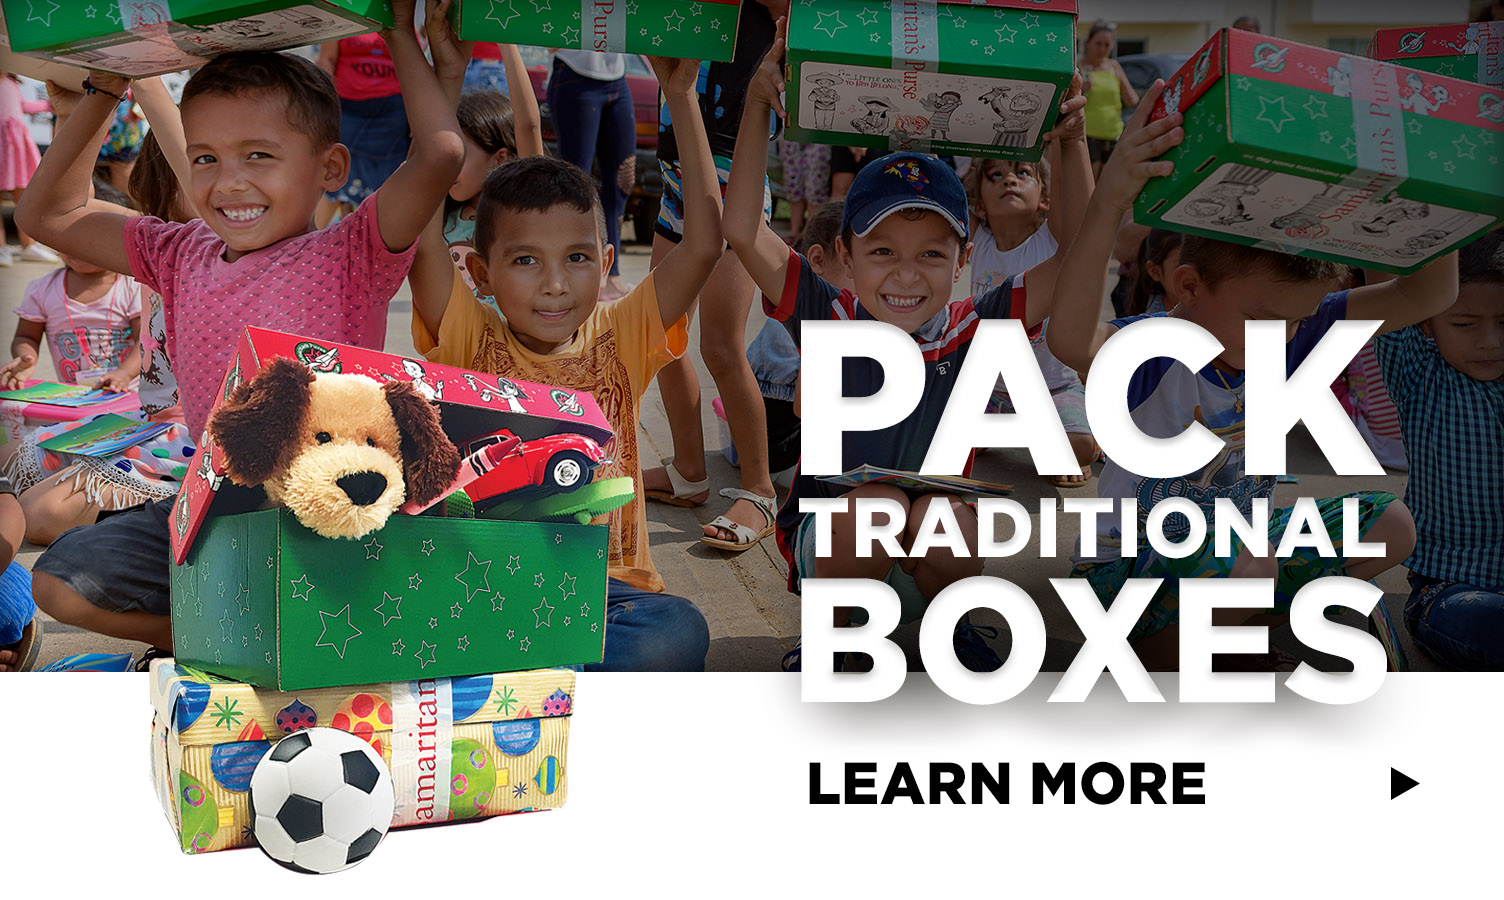 Pack traditional shoeboxes - learn more